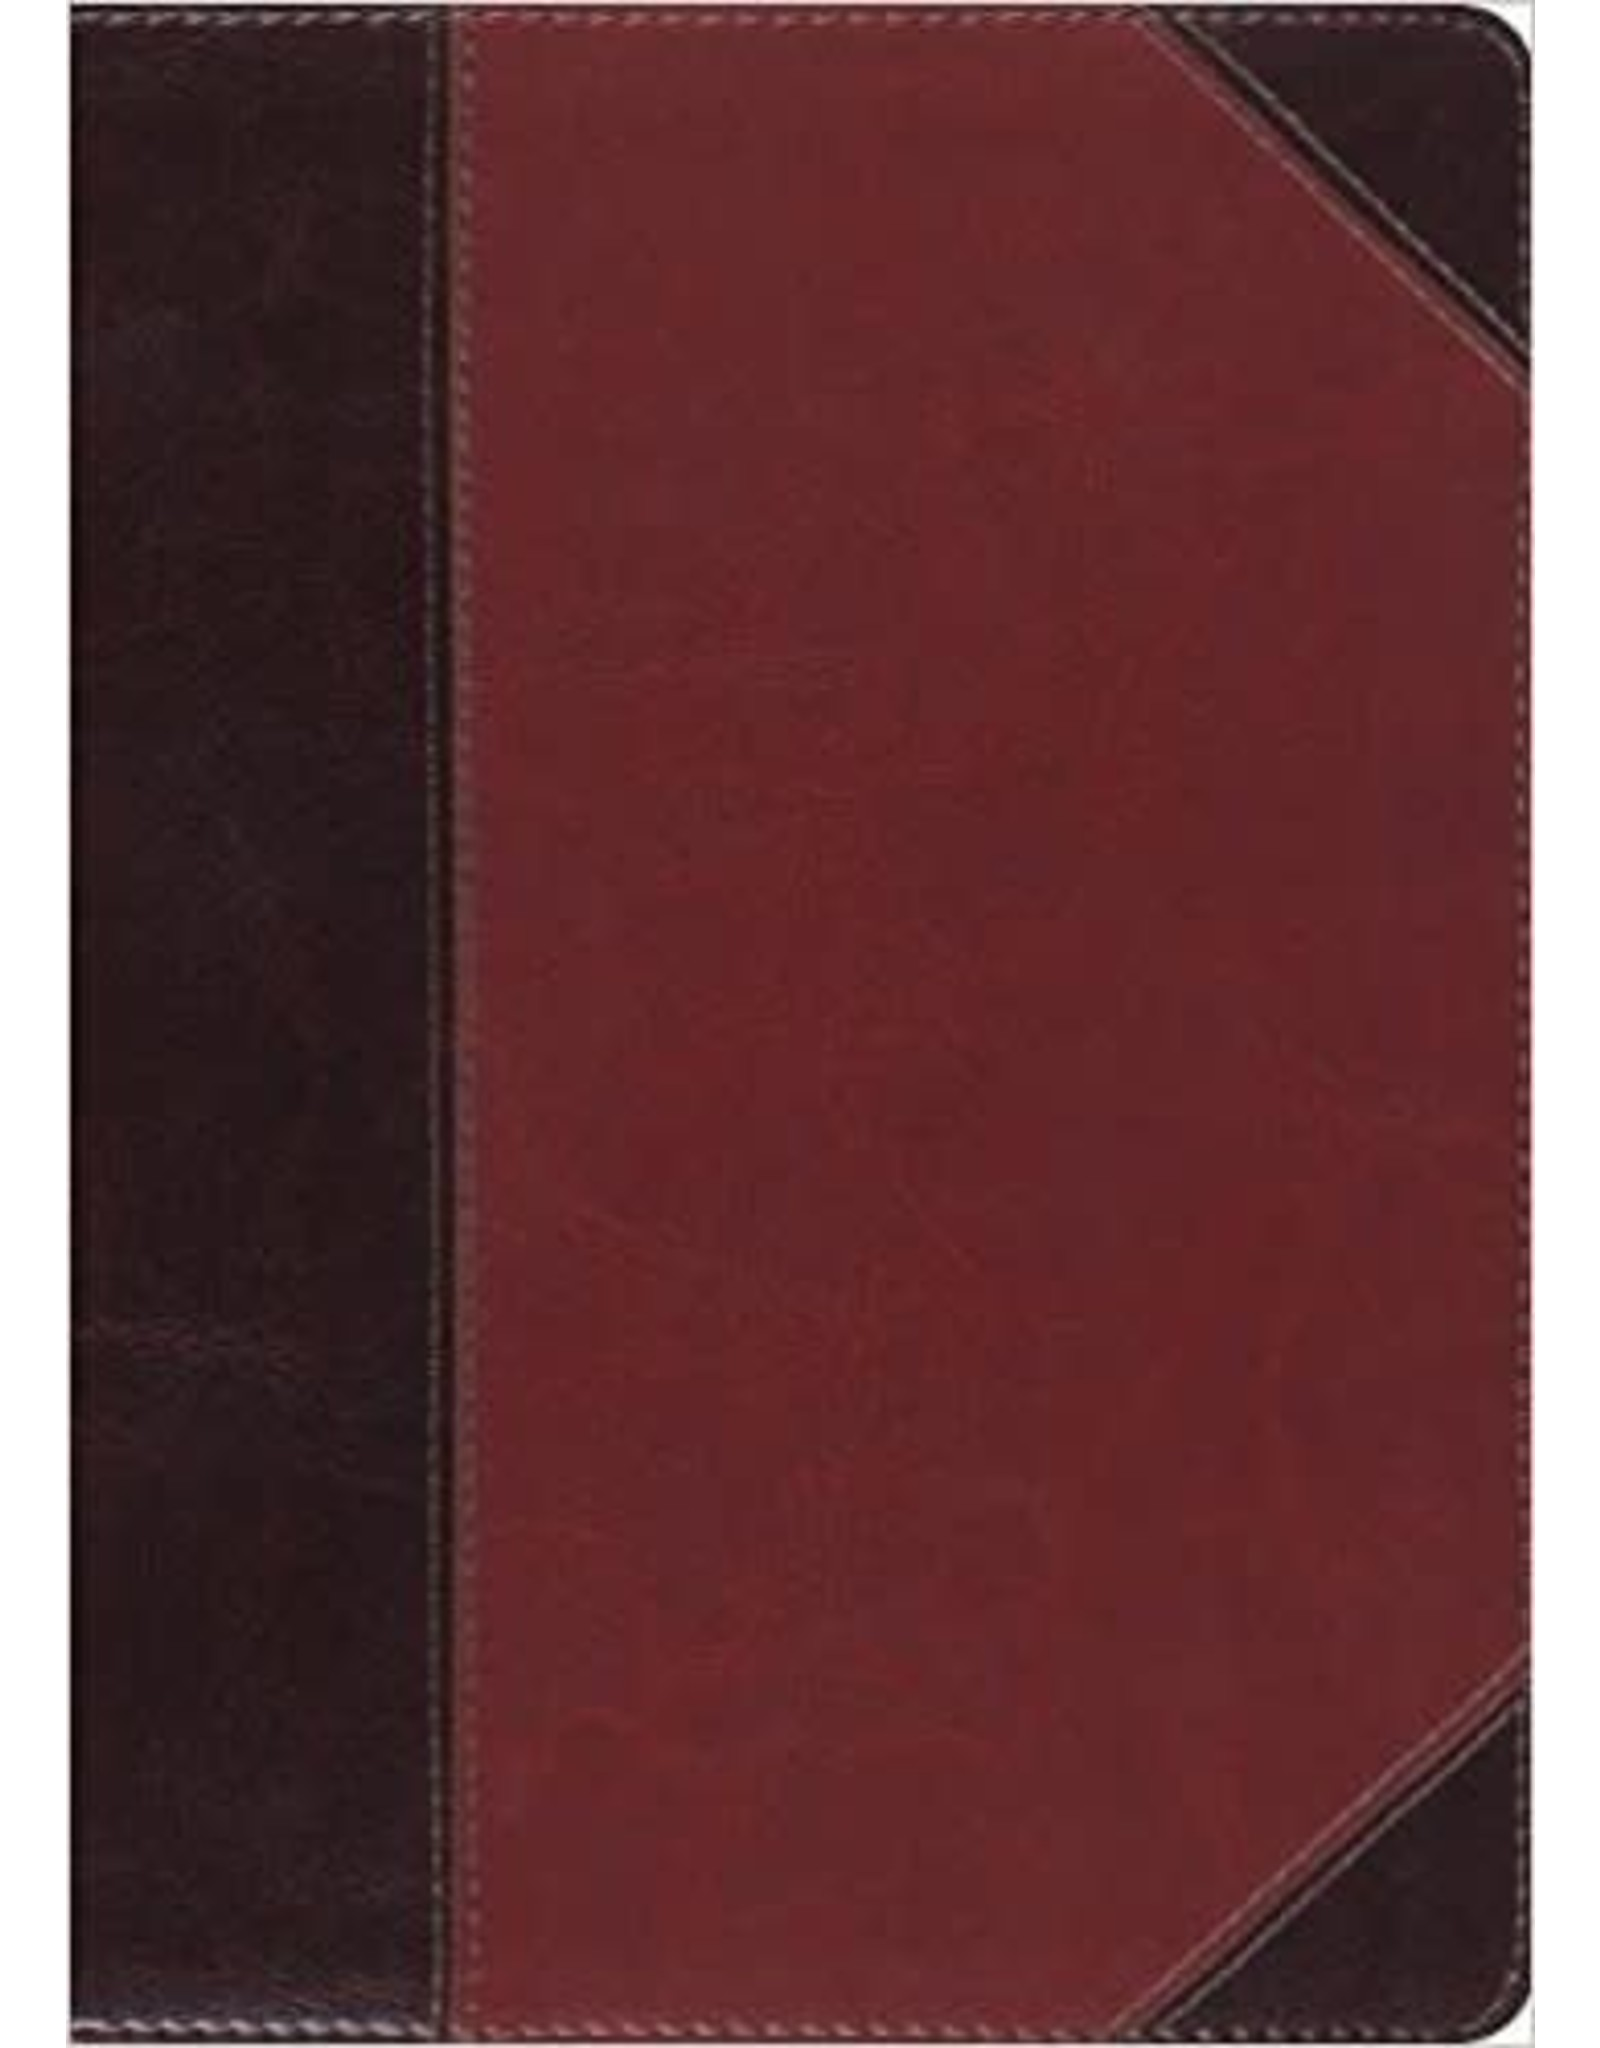 Crossway / Good News OP - ESV MacArthur Study Bible (Tru